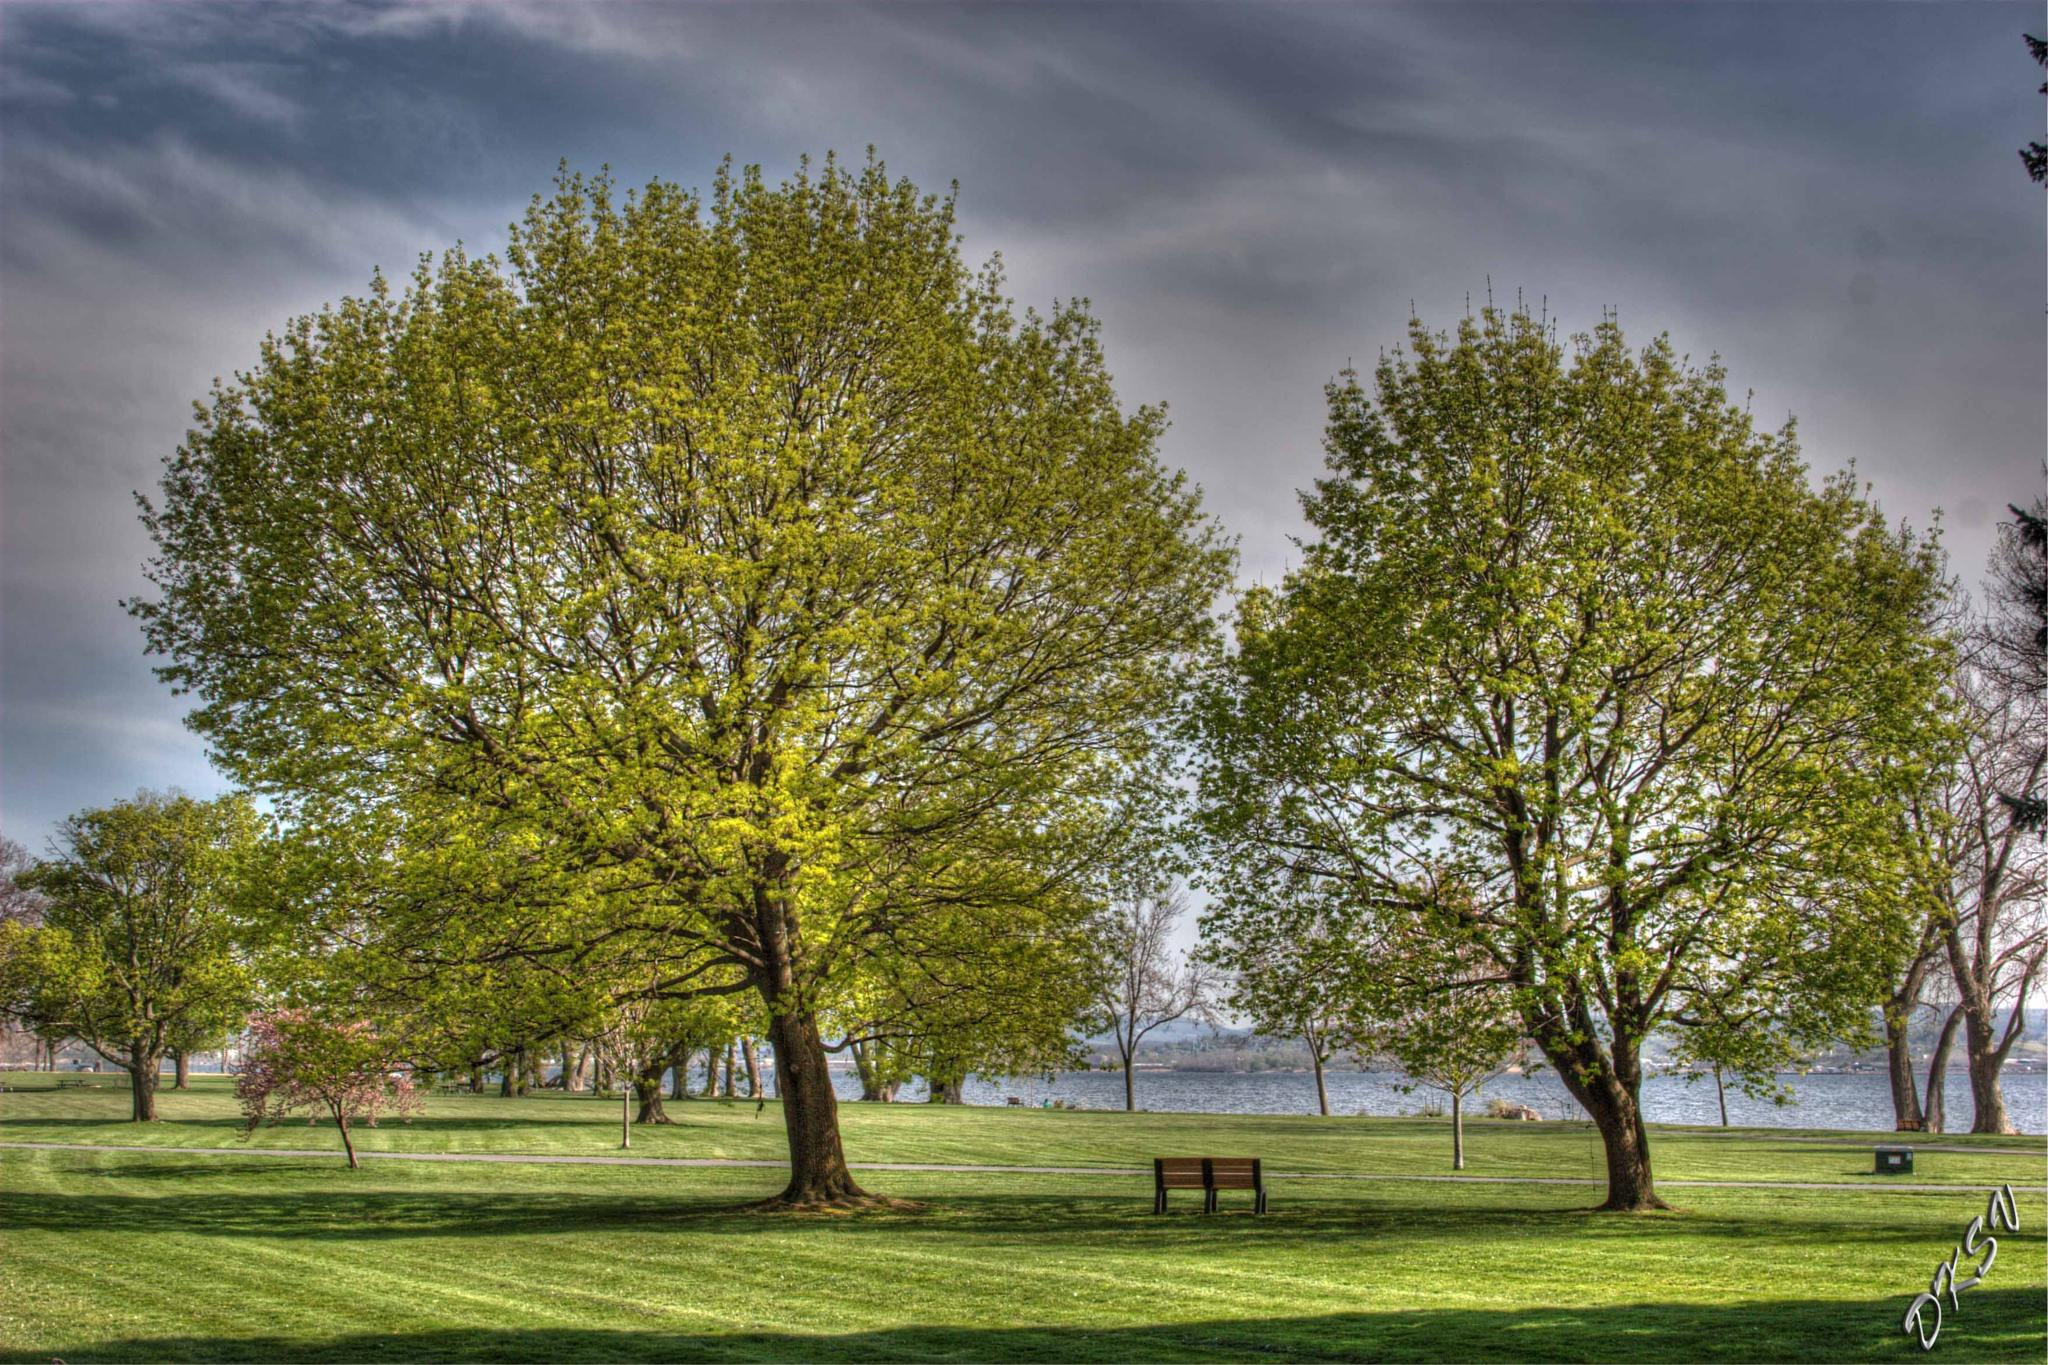 The Bench 1 by William Bulger